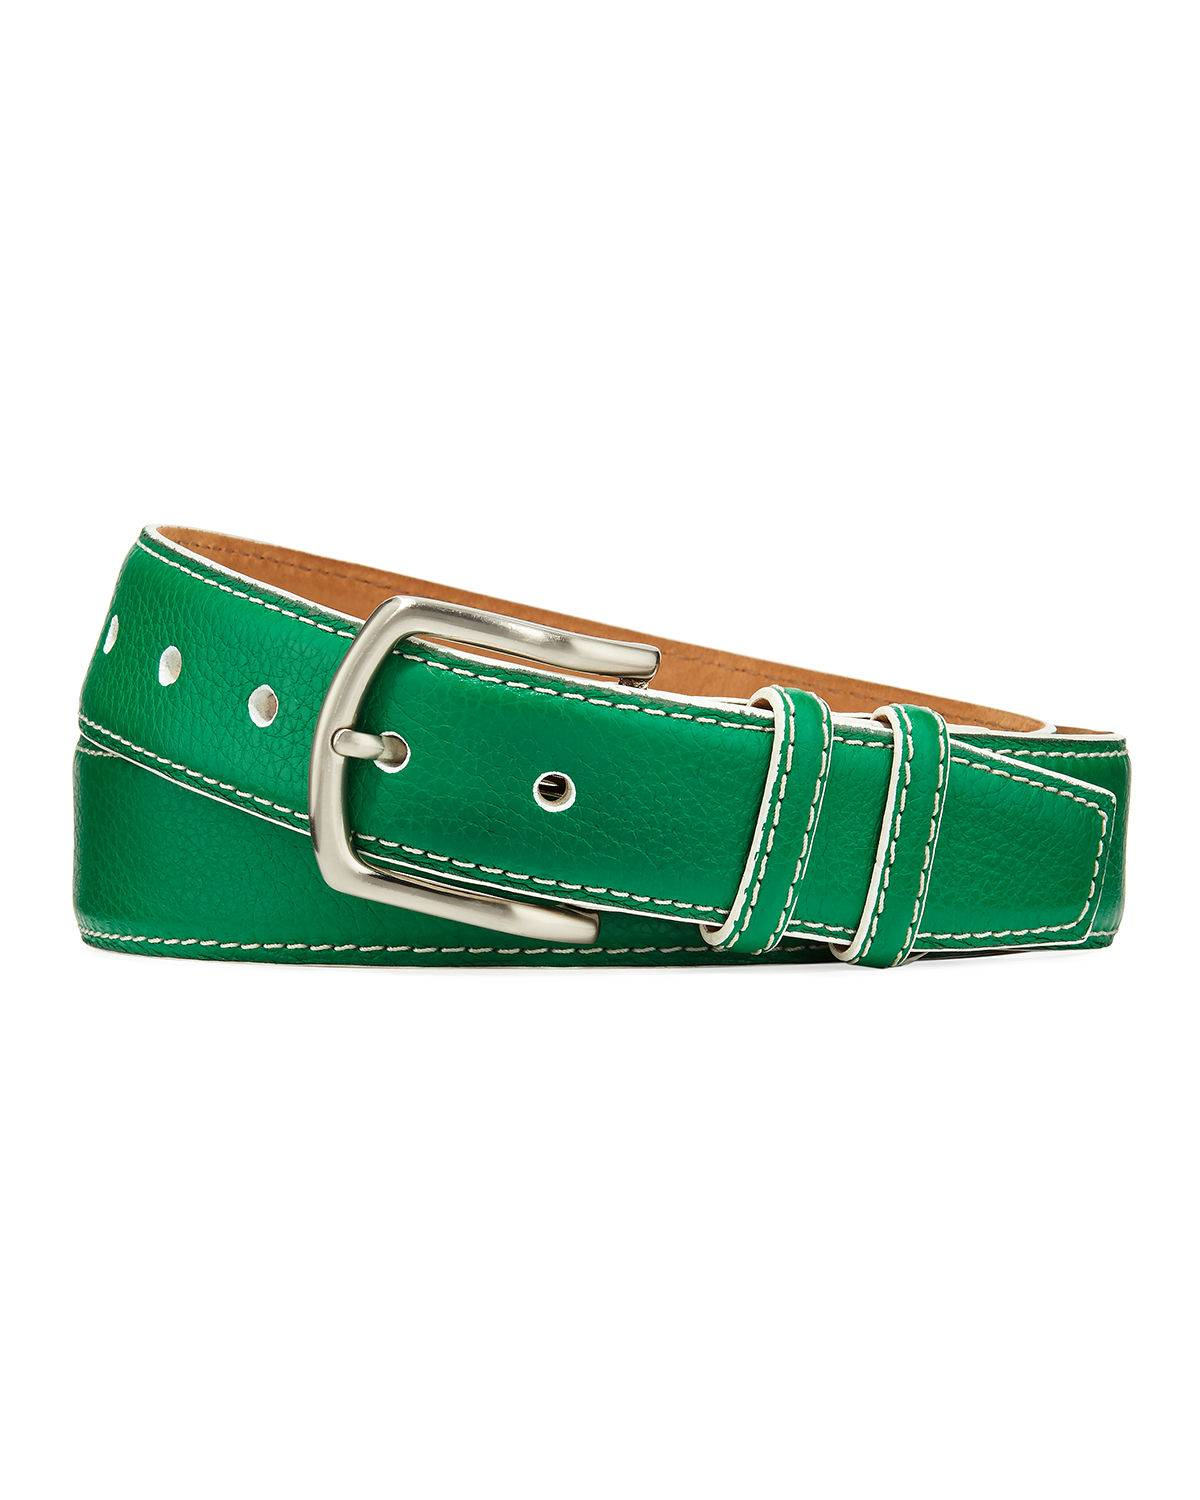 W. Kleinberg Men's South Beach Pebbled Leather Belt - Size: 50in / 125cm